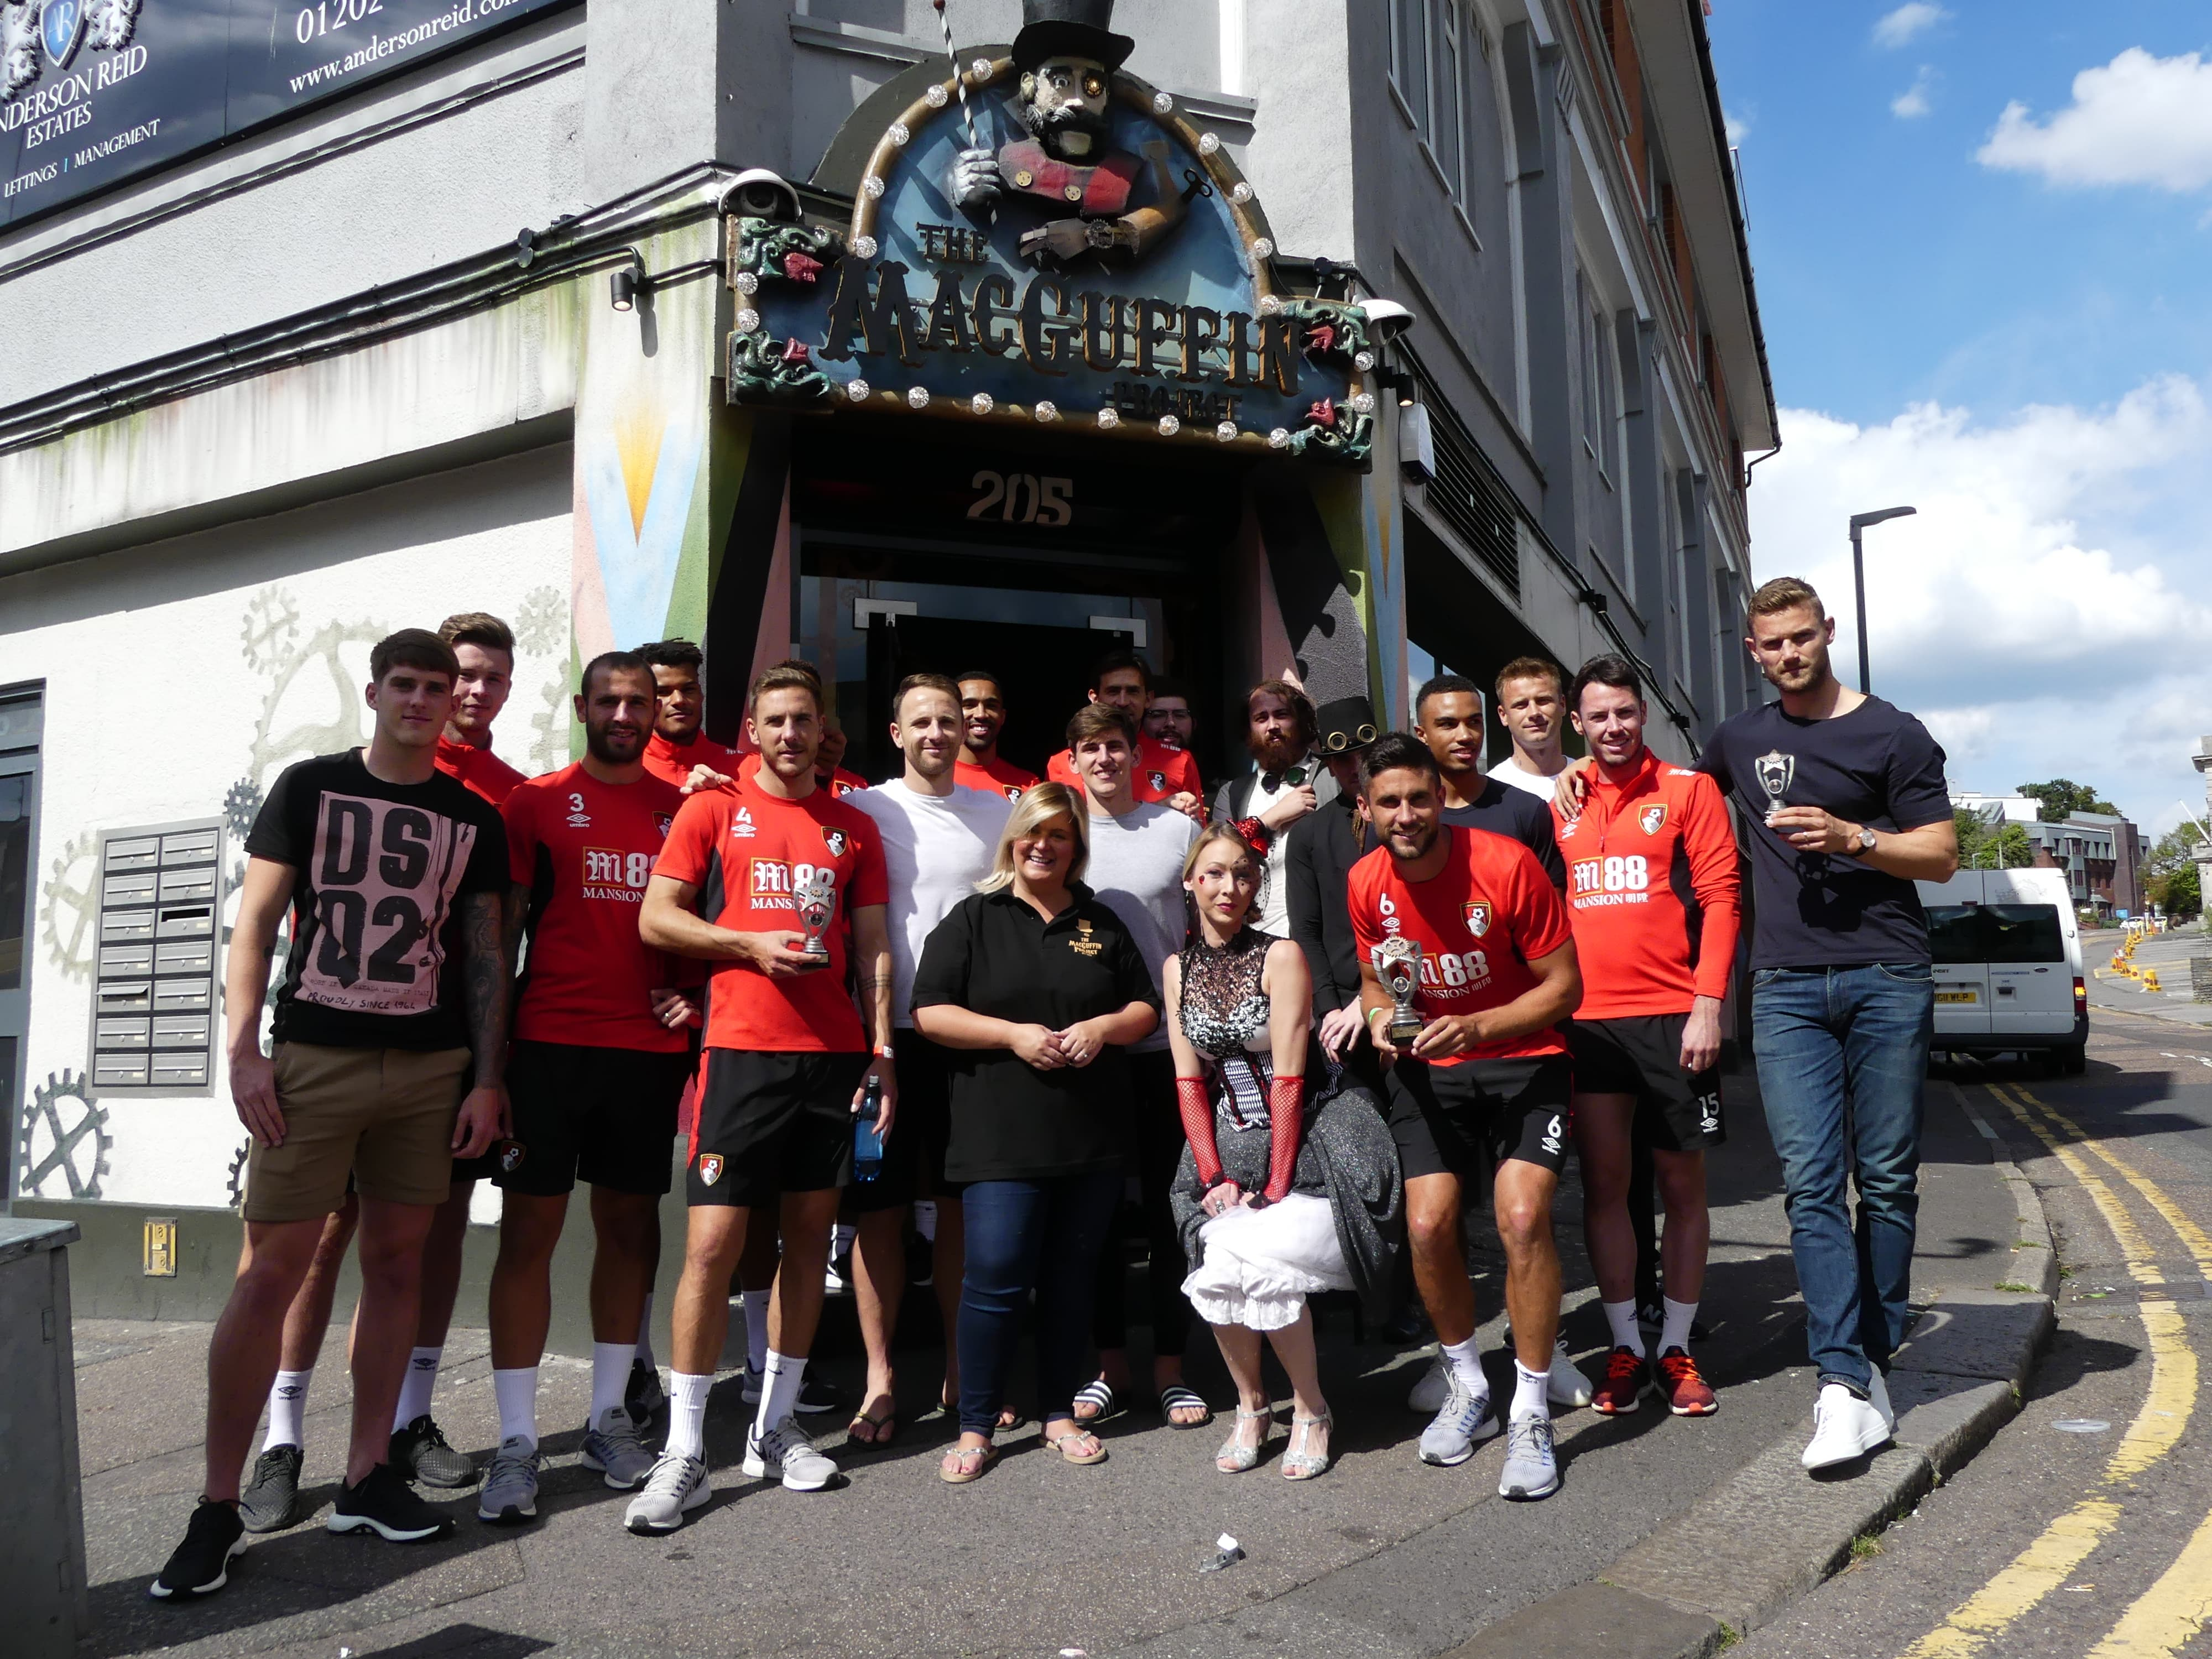 AFC Bournemouth take on The MacGuffin Project